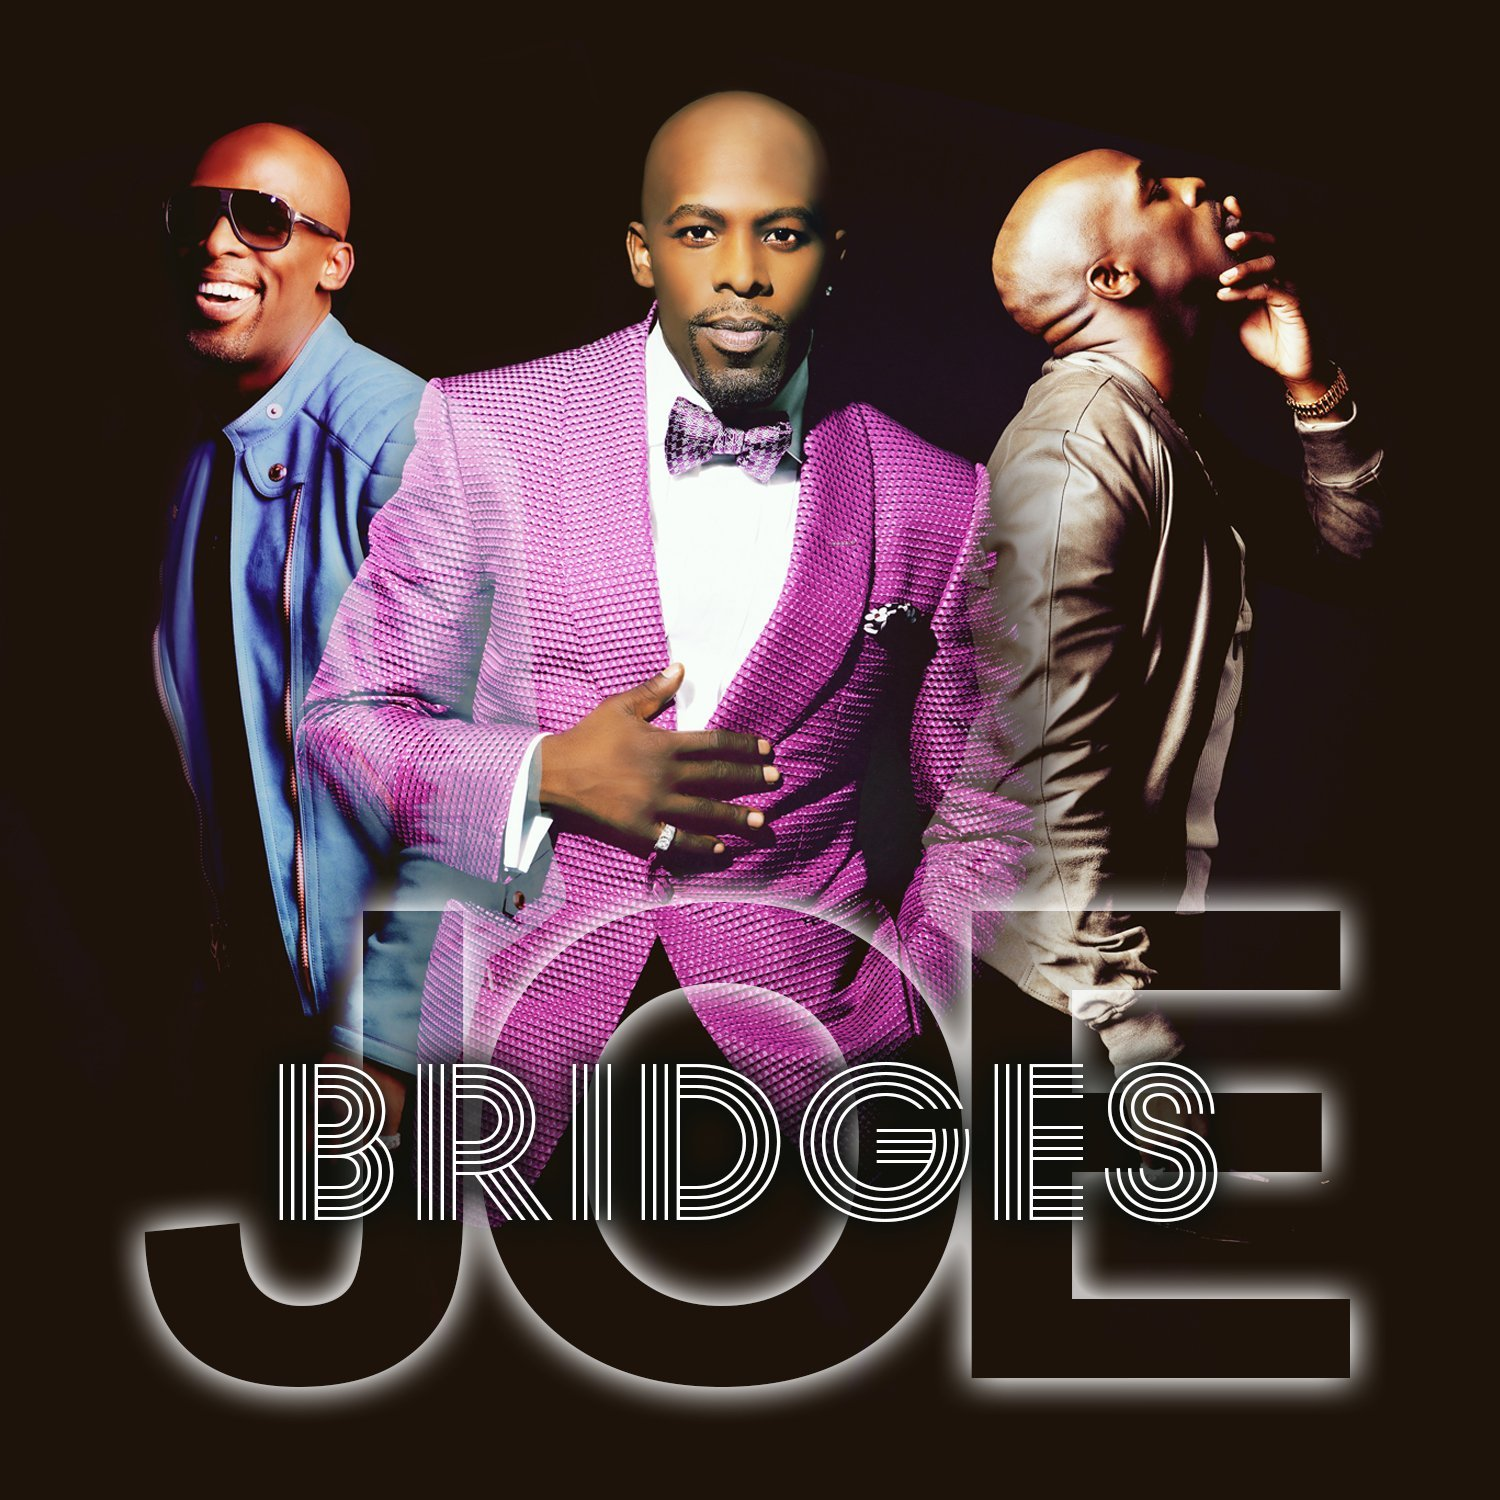 Joe Keeps Things Grown & Sexy on 'Bridges'